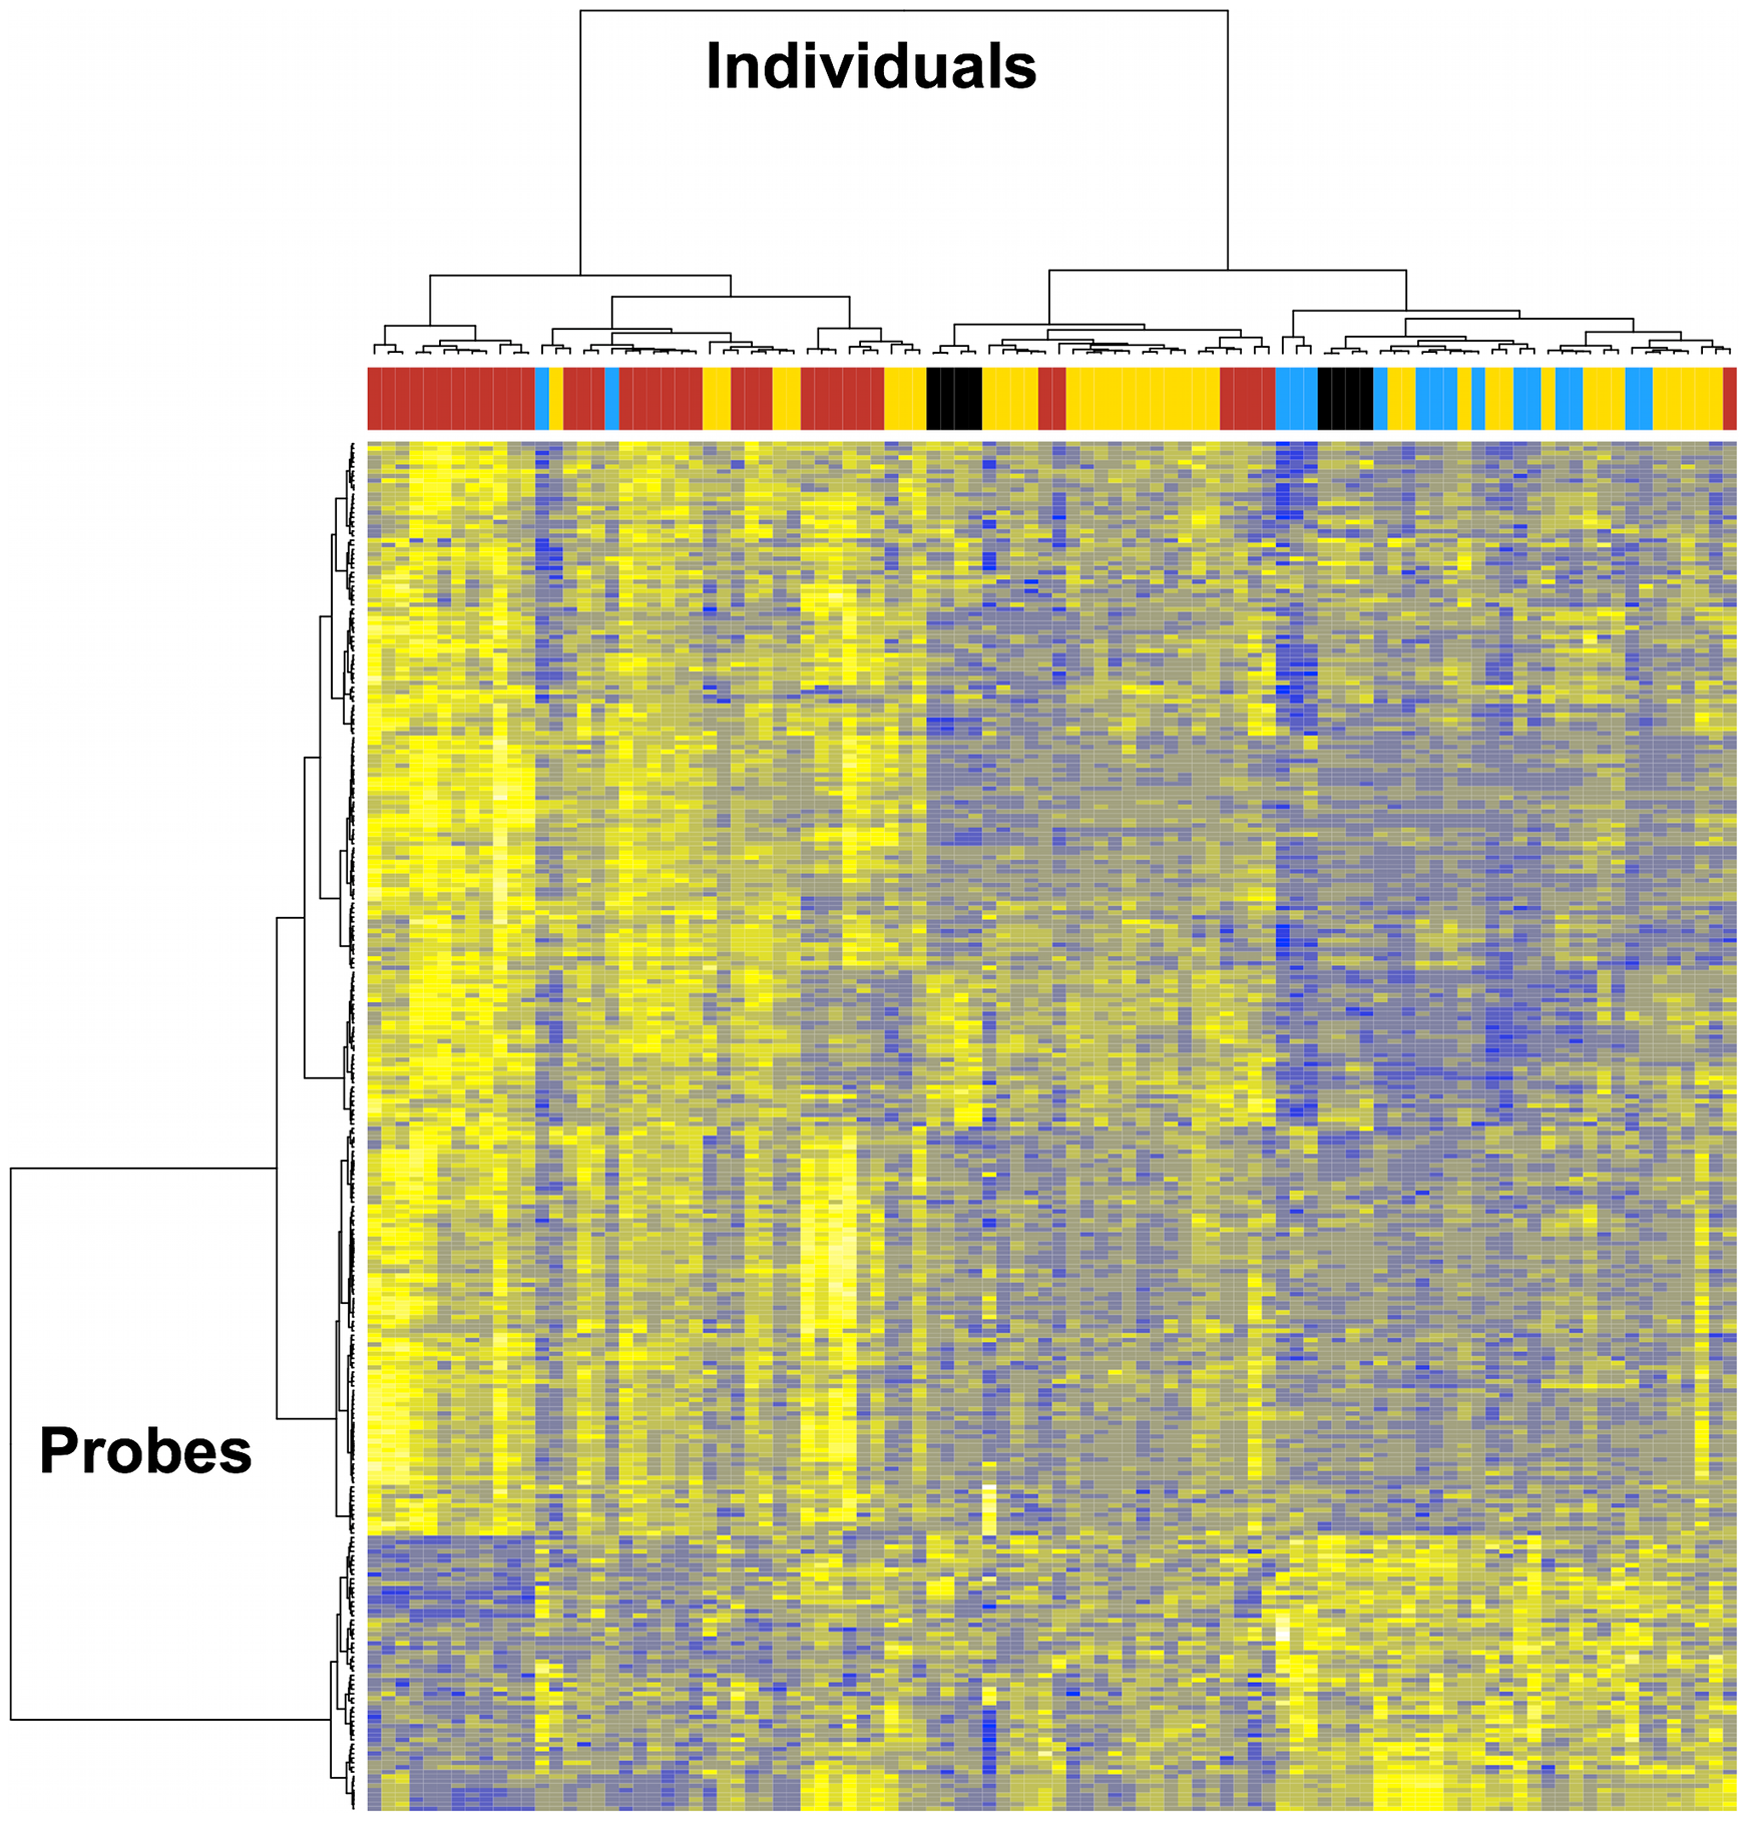 Transcriptome analysis in CD4+ T cells from HIV-infected individuals before and after viral suppression.